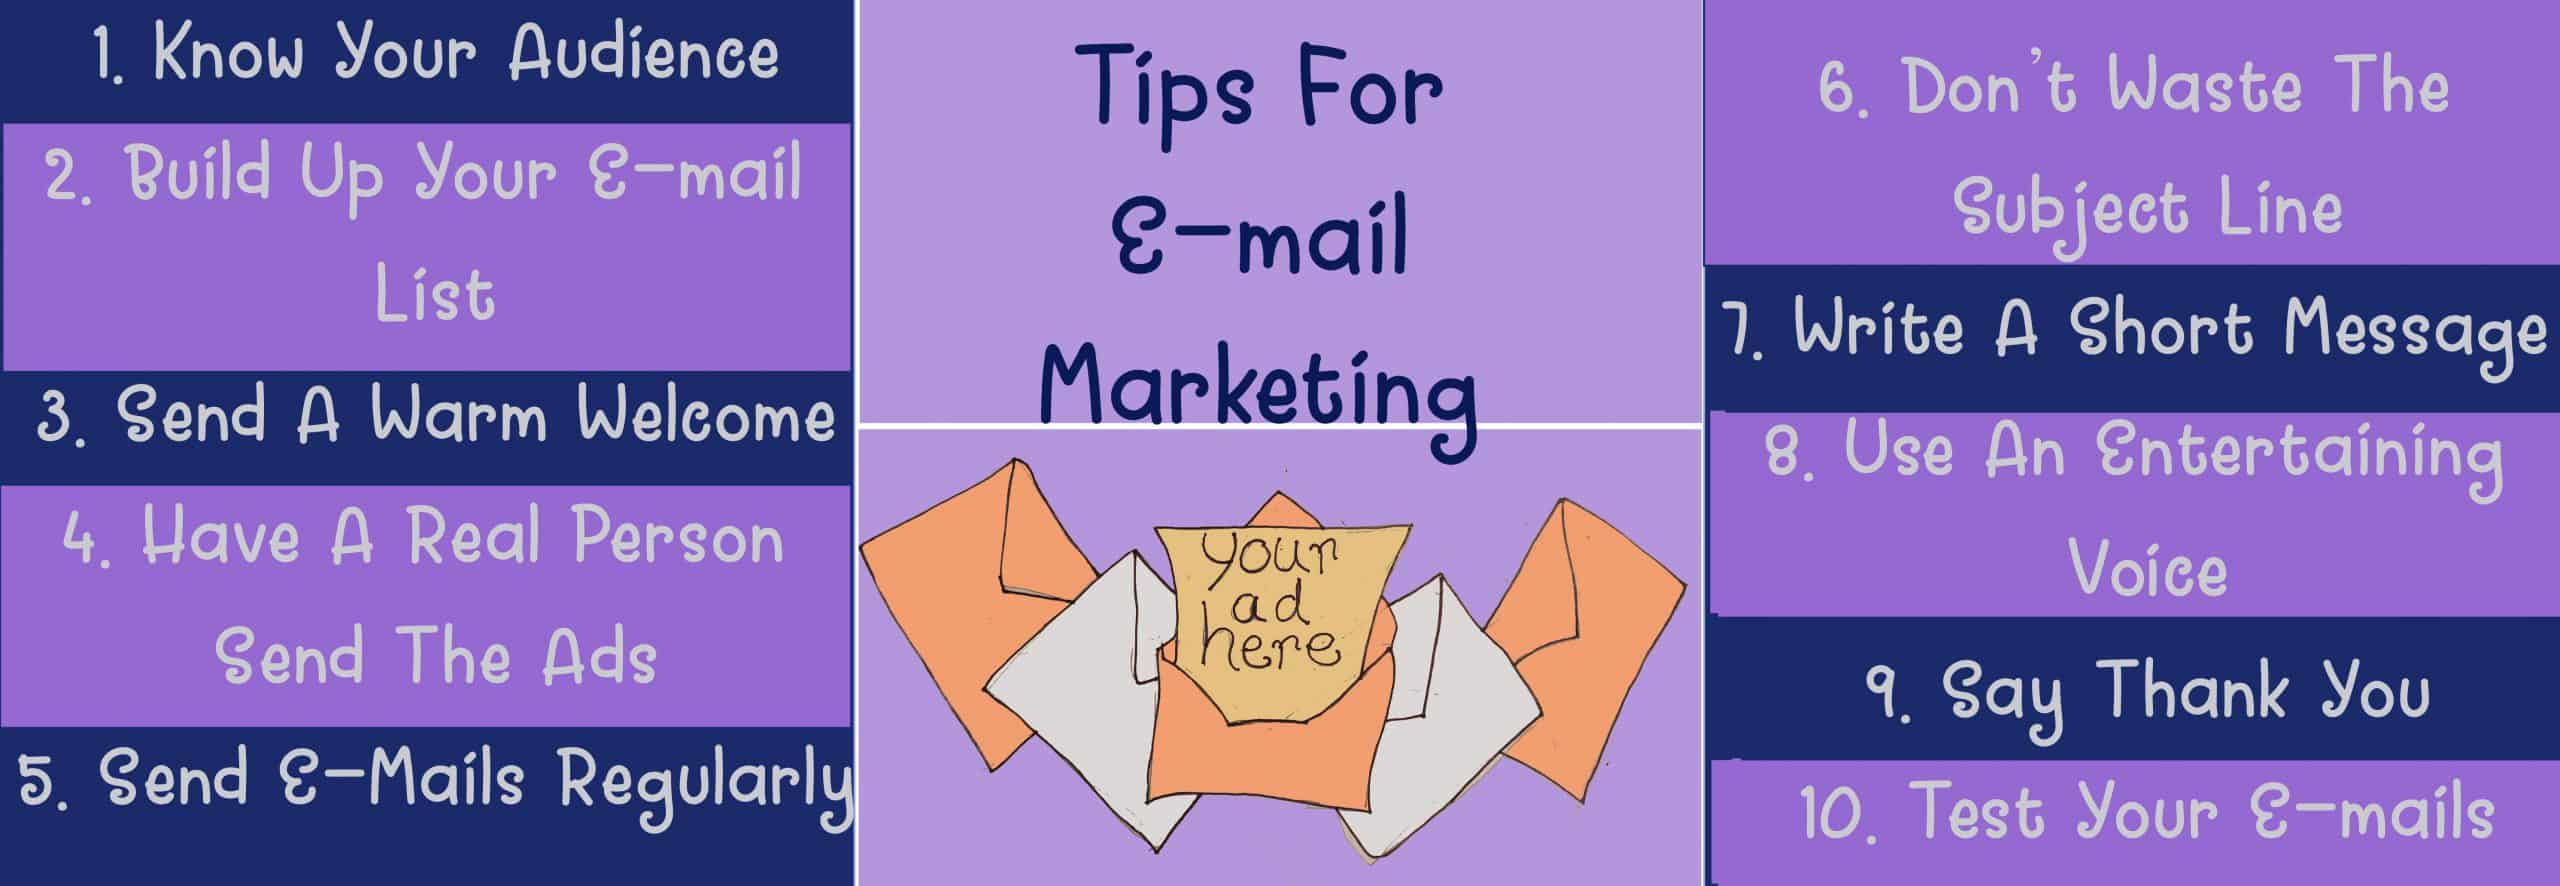 Tips for e-mail marketing